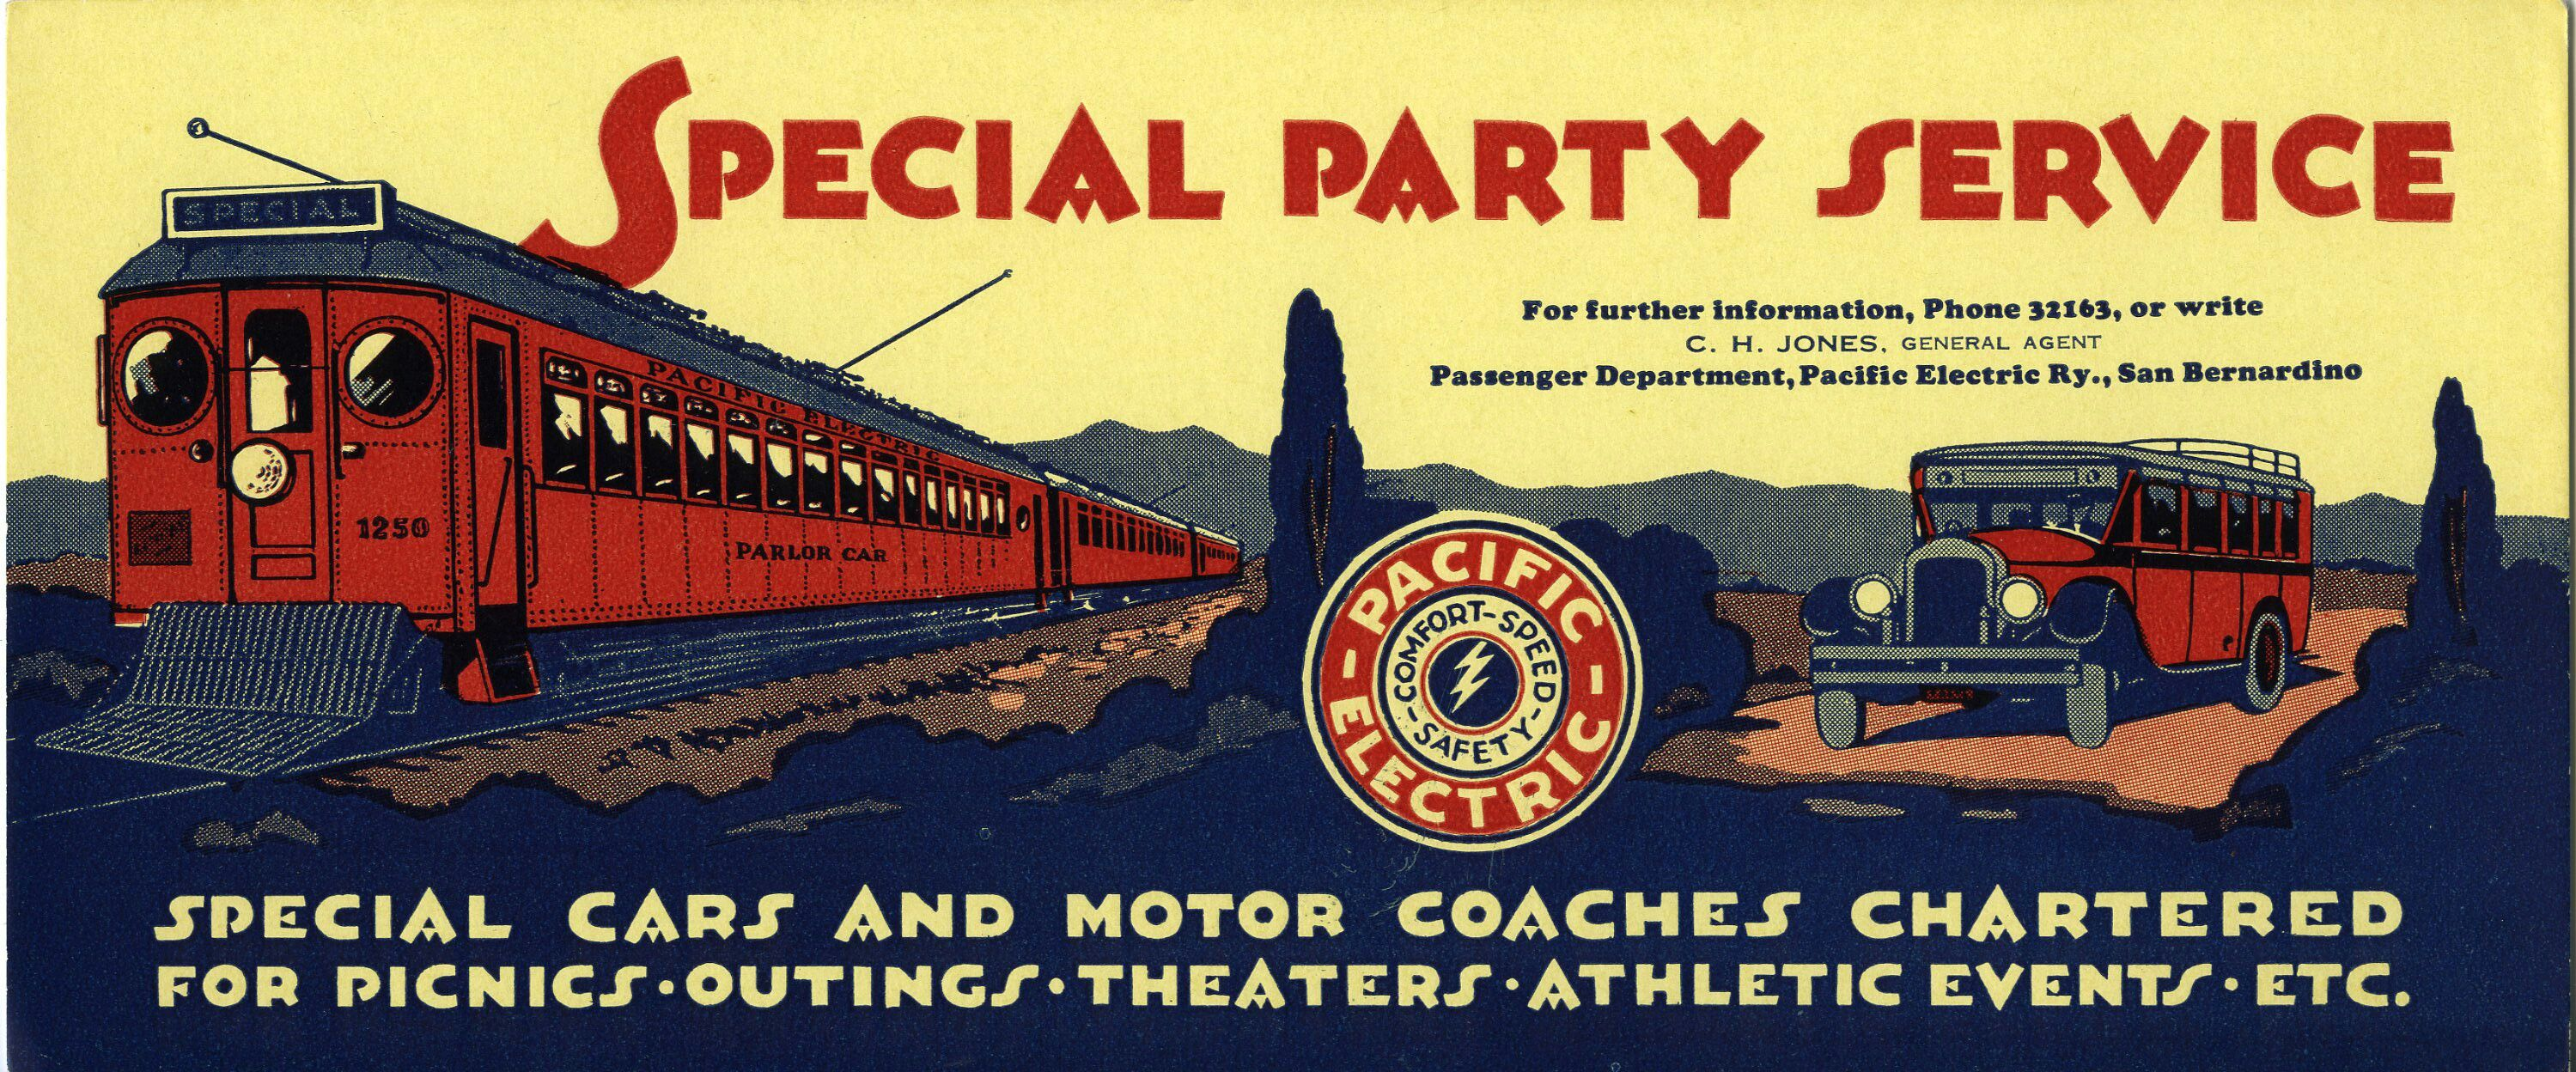 Pin By John Jacobsen On Trains Pacific Electric Railway Museum Mass Transit System Red Car